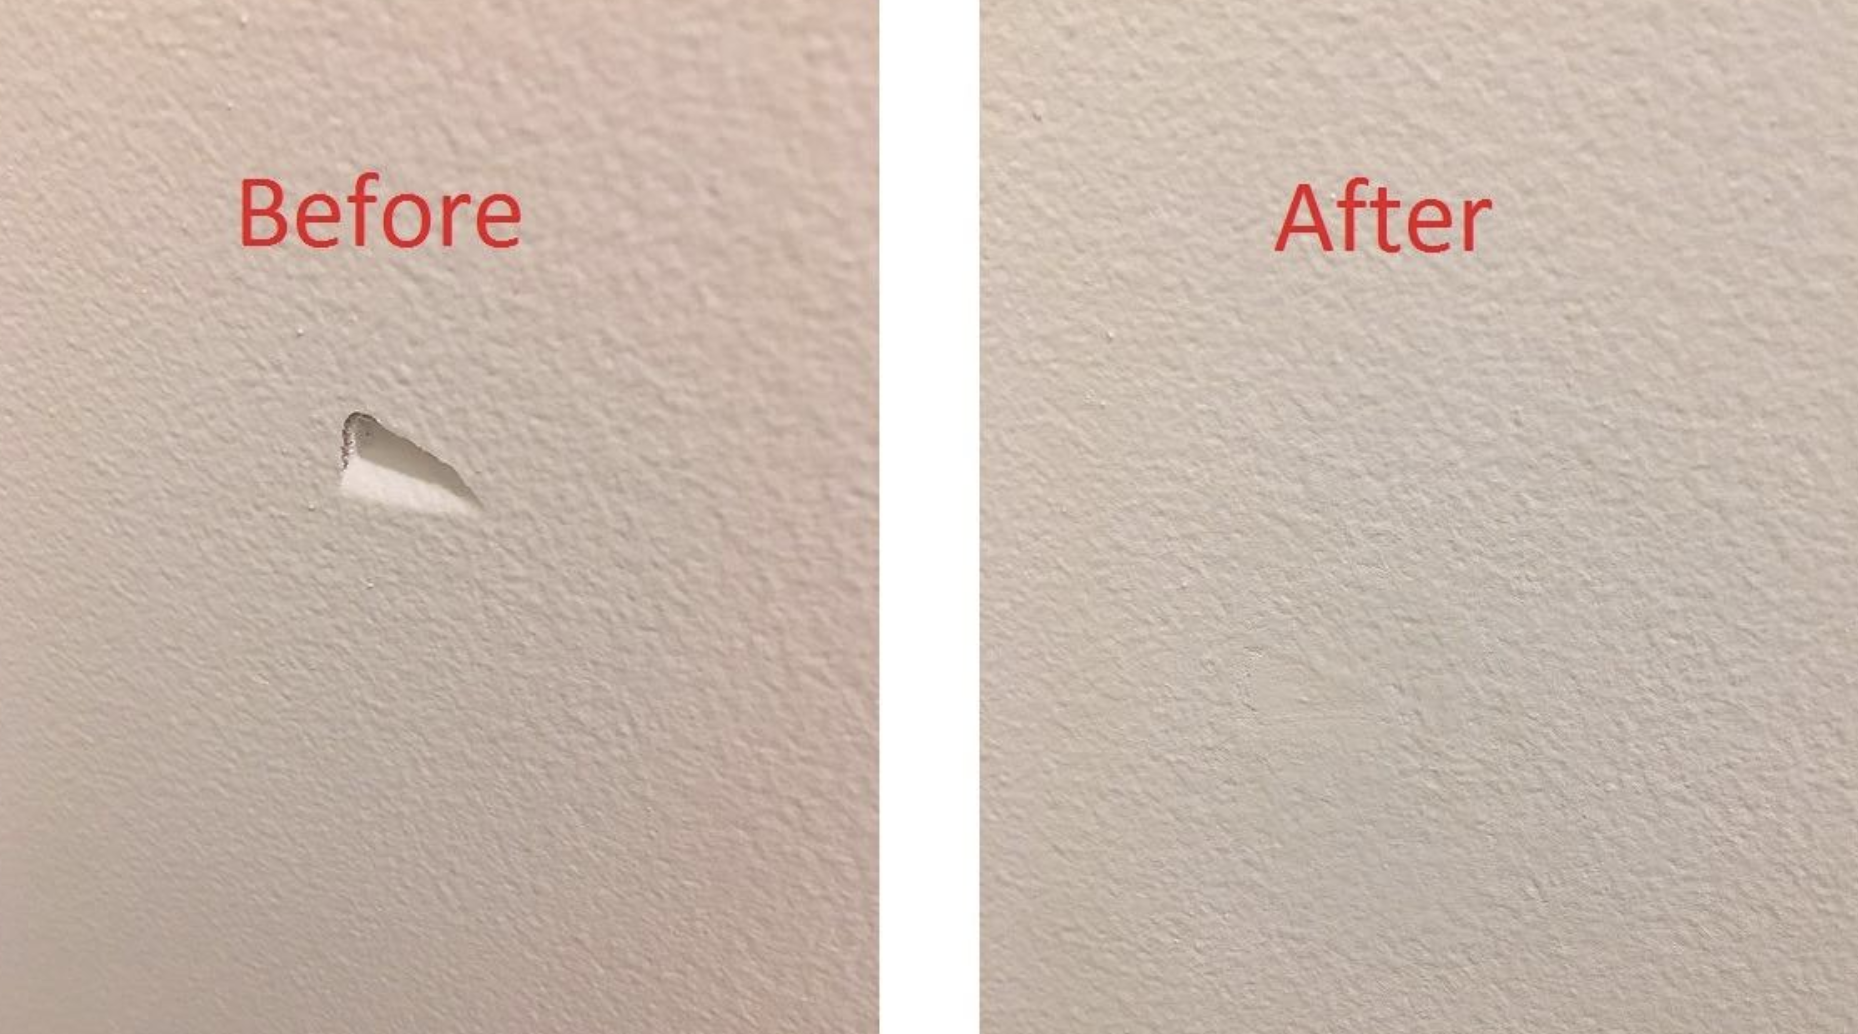 Reviewer's before and after showing a small dent in their wall, and the after photo showing how the kit fixed it with no hole